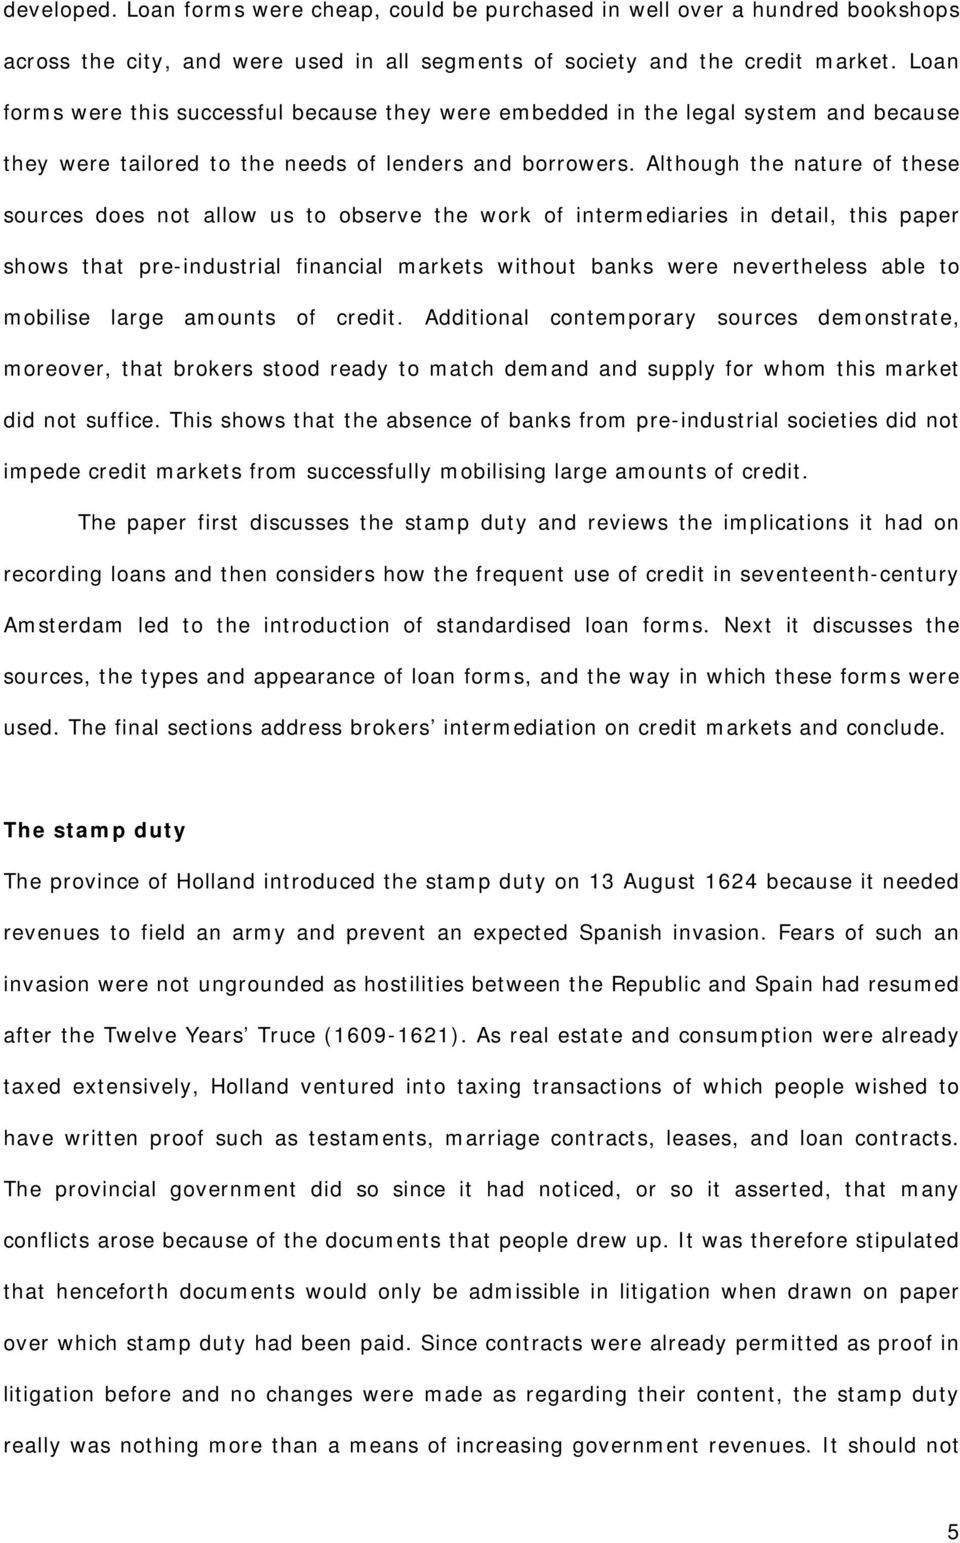 Although the nature of these sources does not allow us to observe the work of intermediaries in detail, this paper shows that pre-industrial financial markets without banks were nevertheless able to